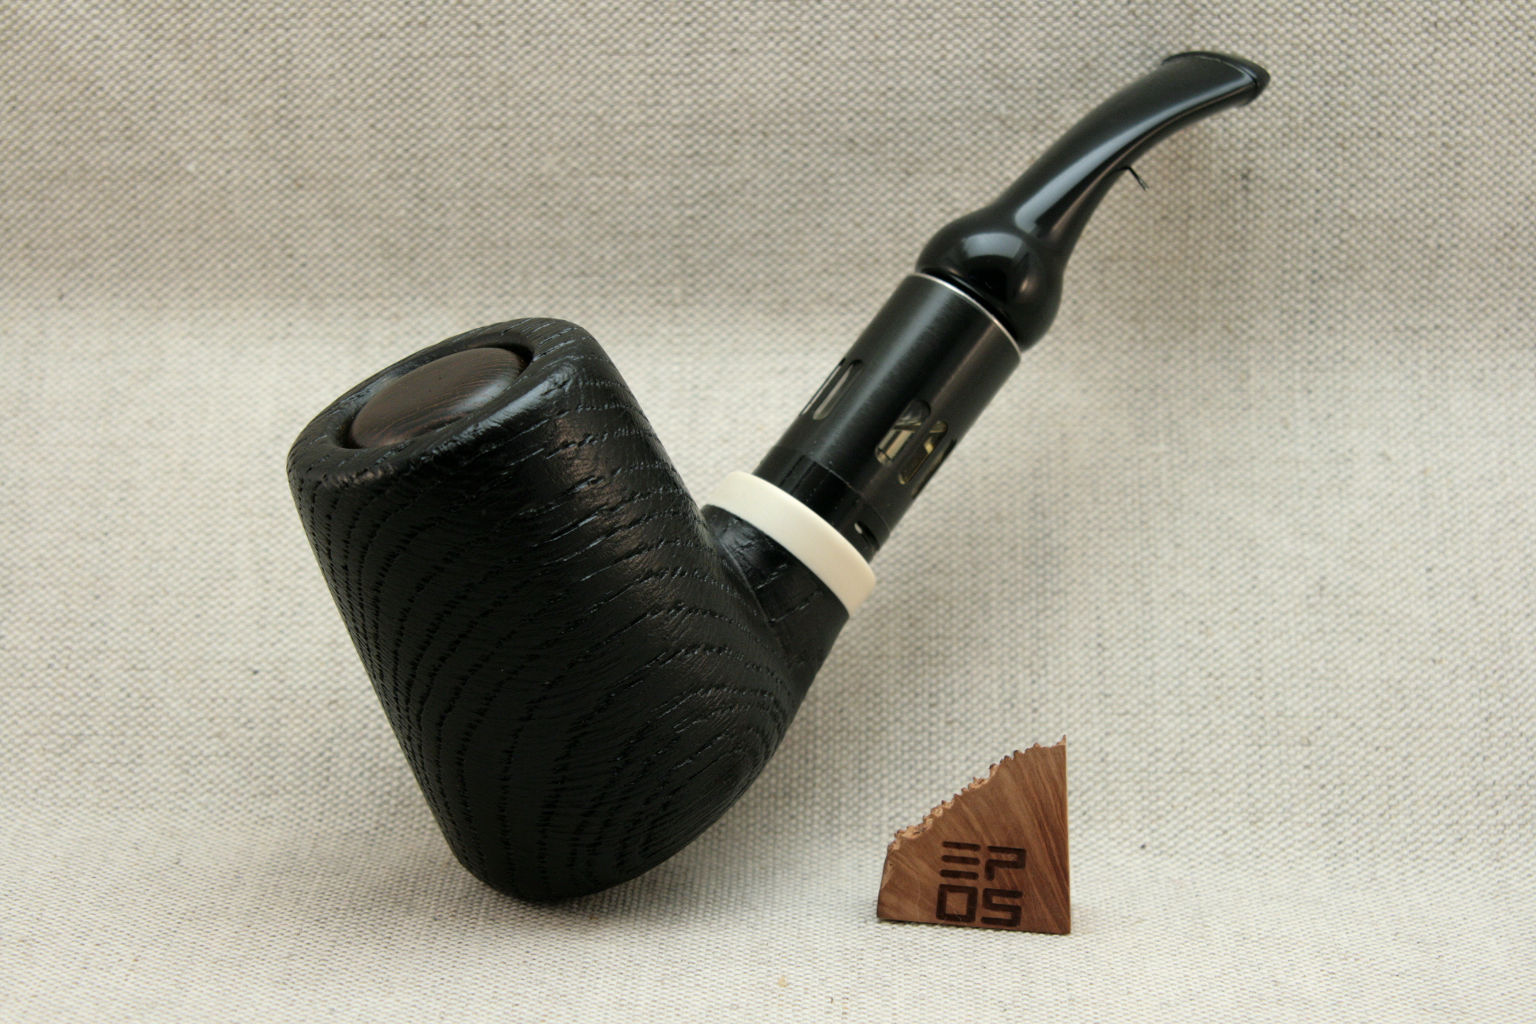 Black Pot e-pipe